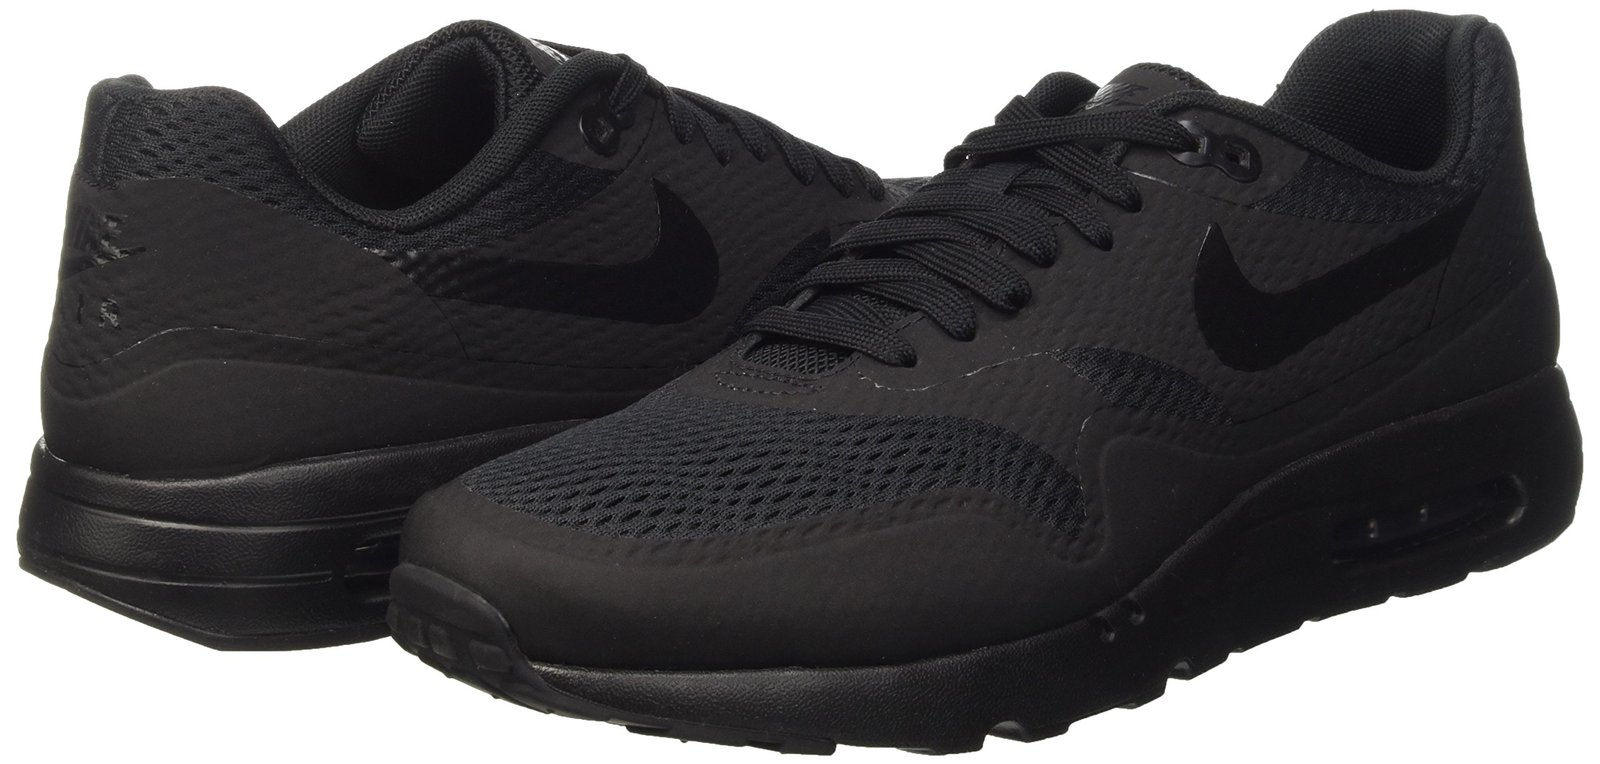 best website 29d24 c3d88 ... Nike Men s Air Max 1 Ultra Essential Black Black Black Running Shoe  10.5 Men ...